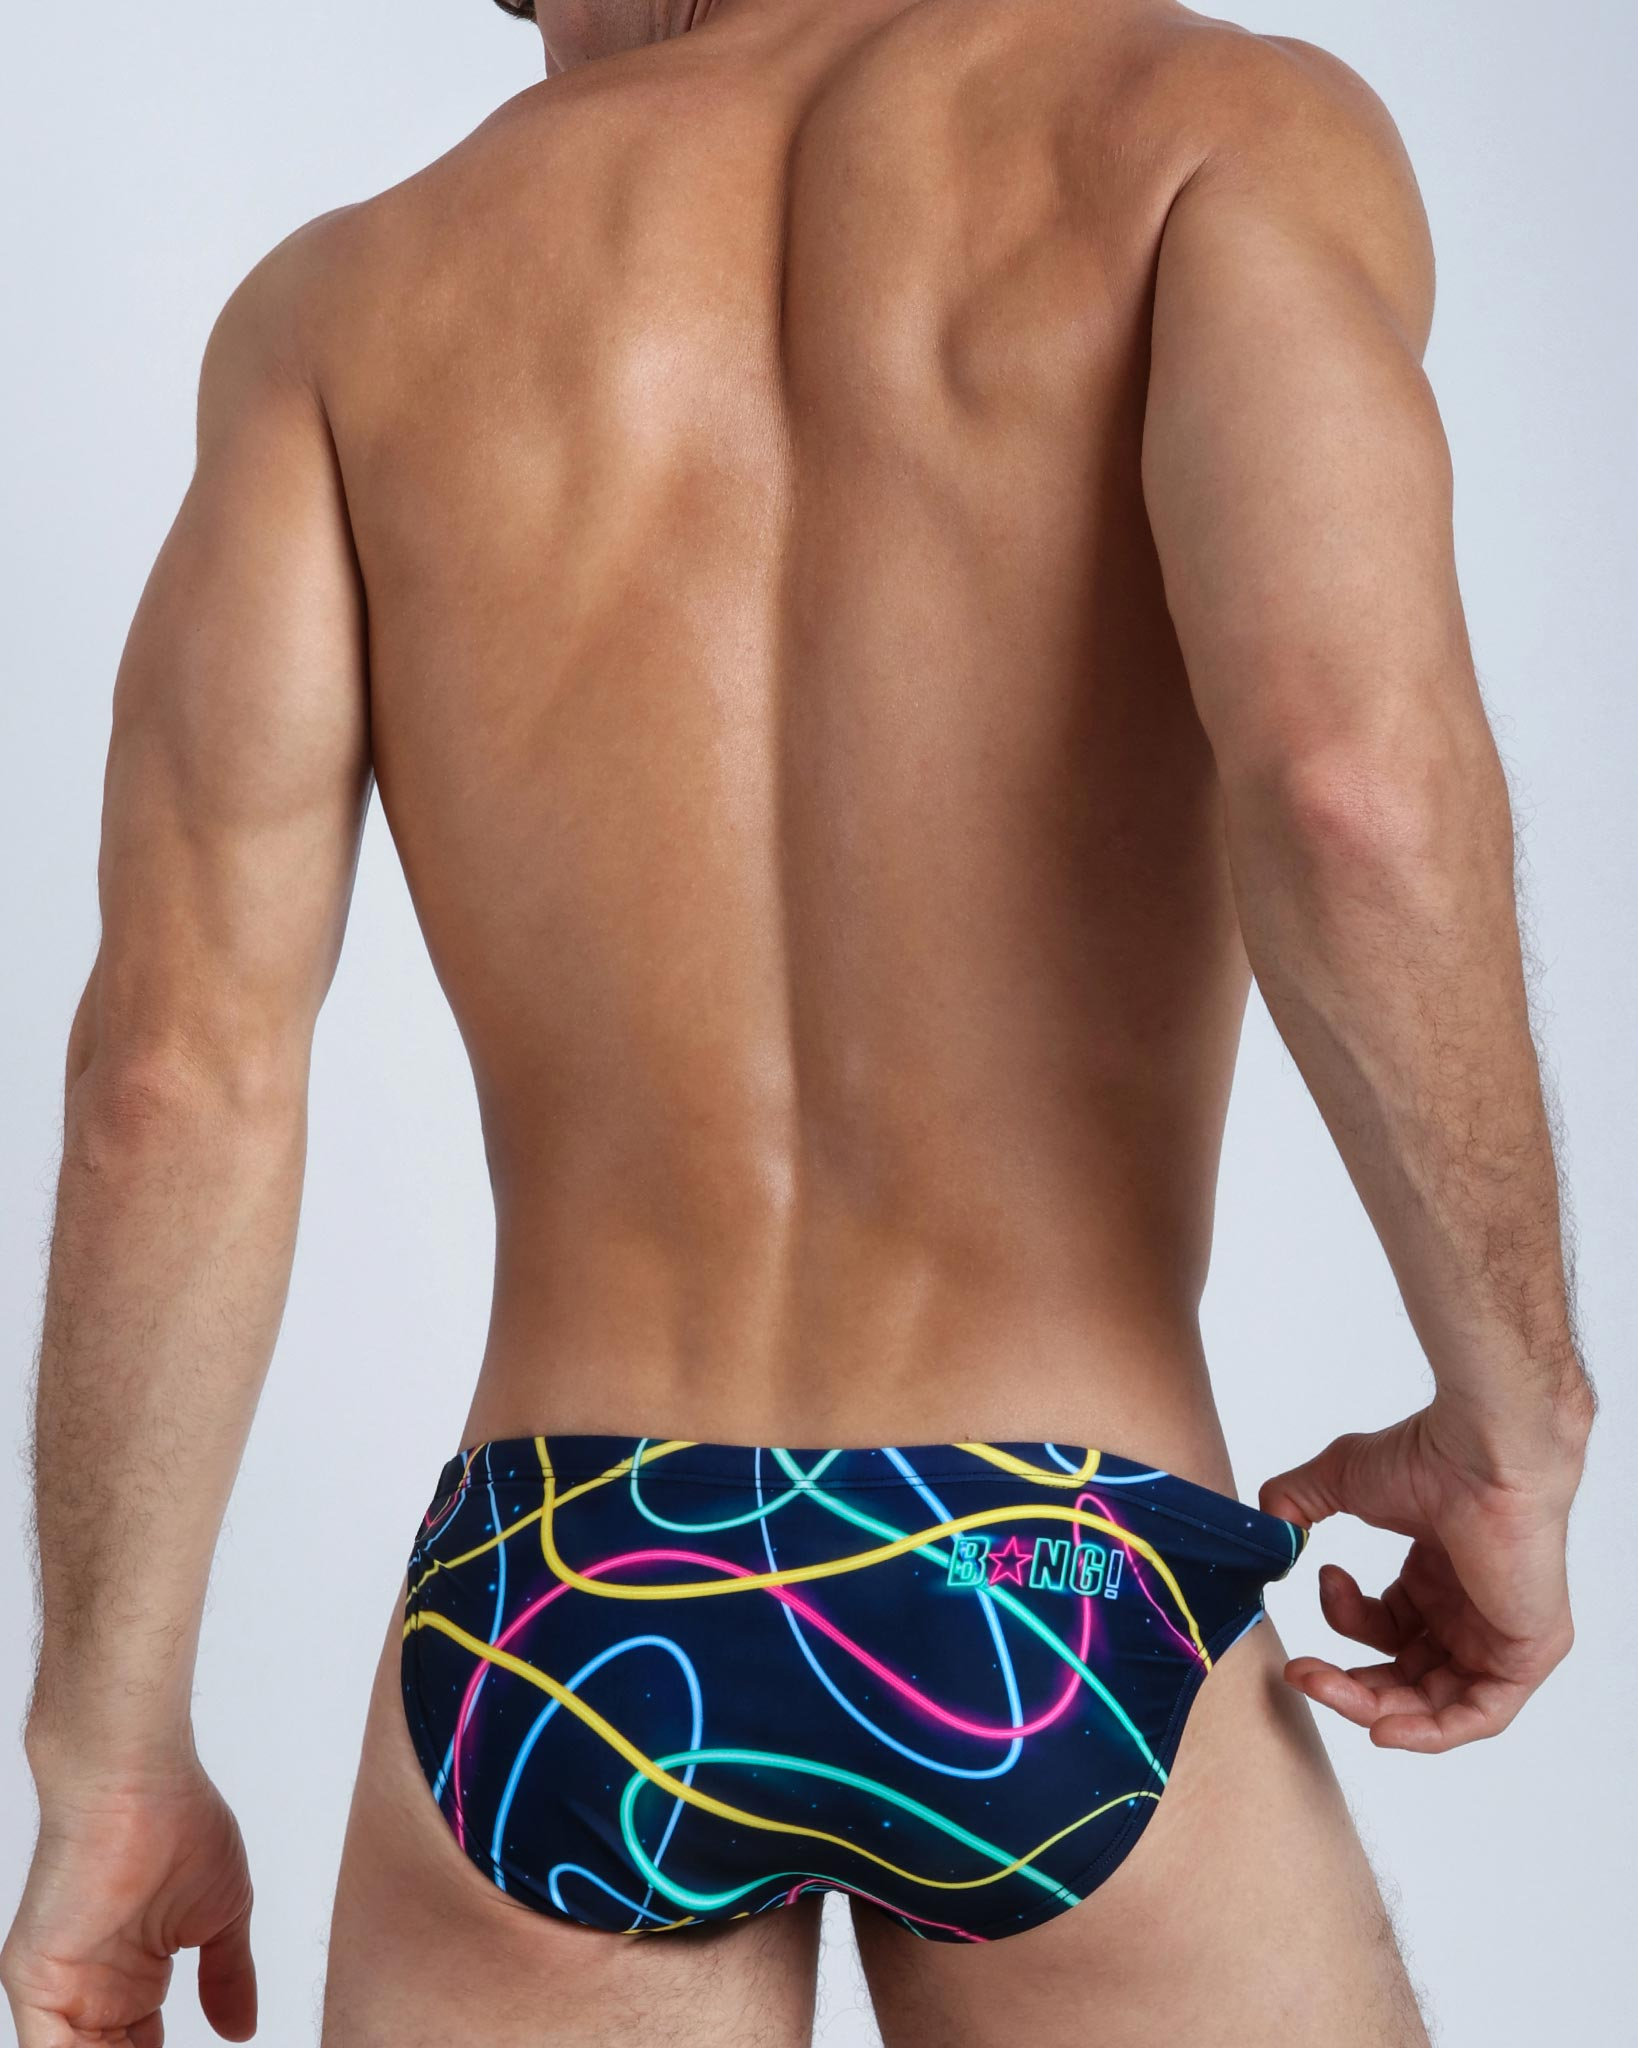 Frontal view of a sexy male model wearing men's swimsuit by the Bang! Clothes brand of men's beachwear from Miami.